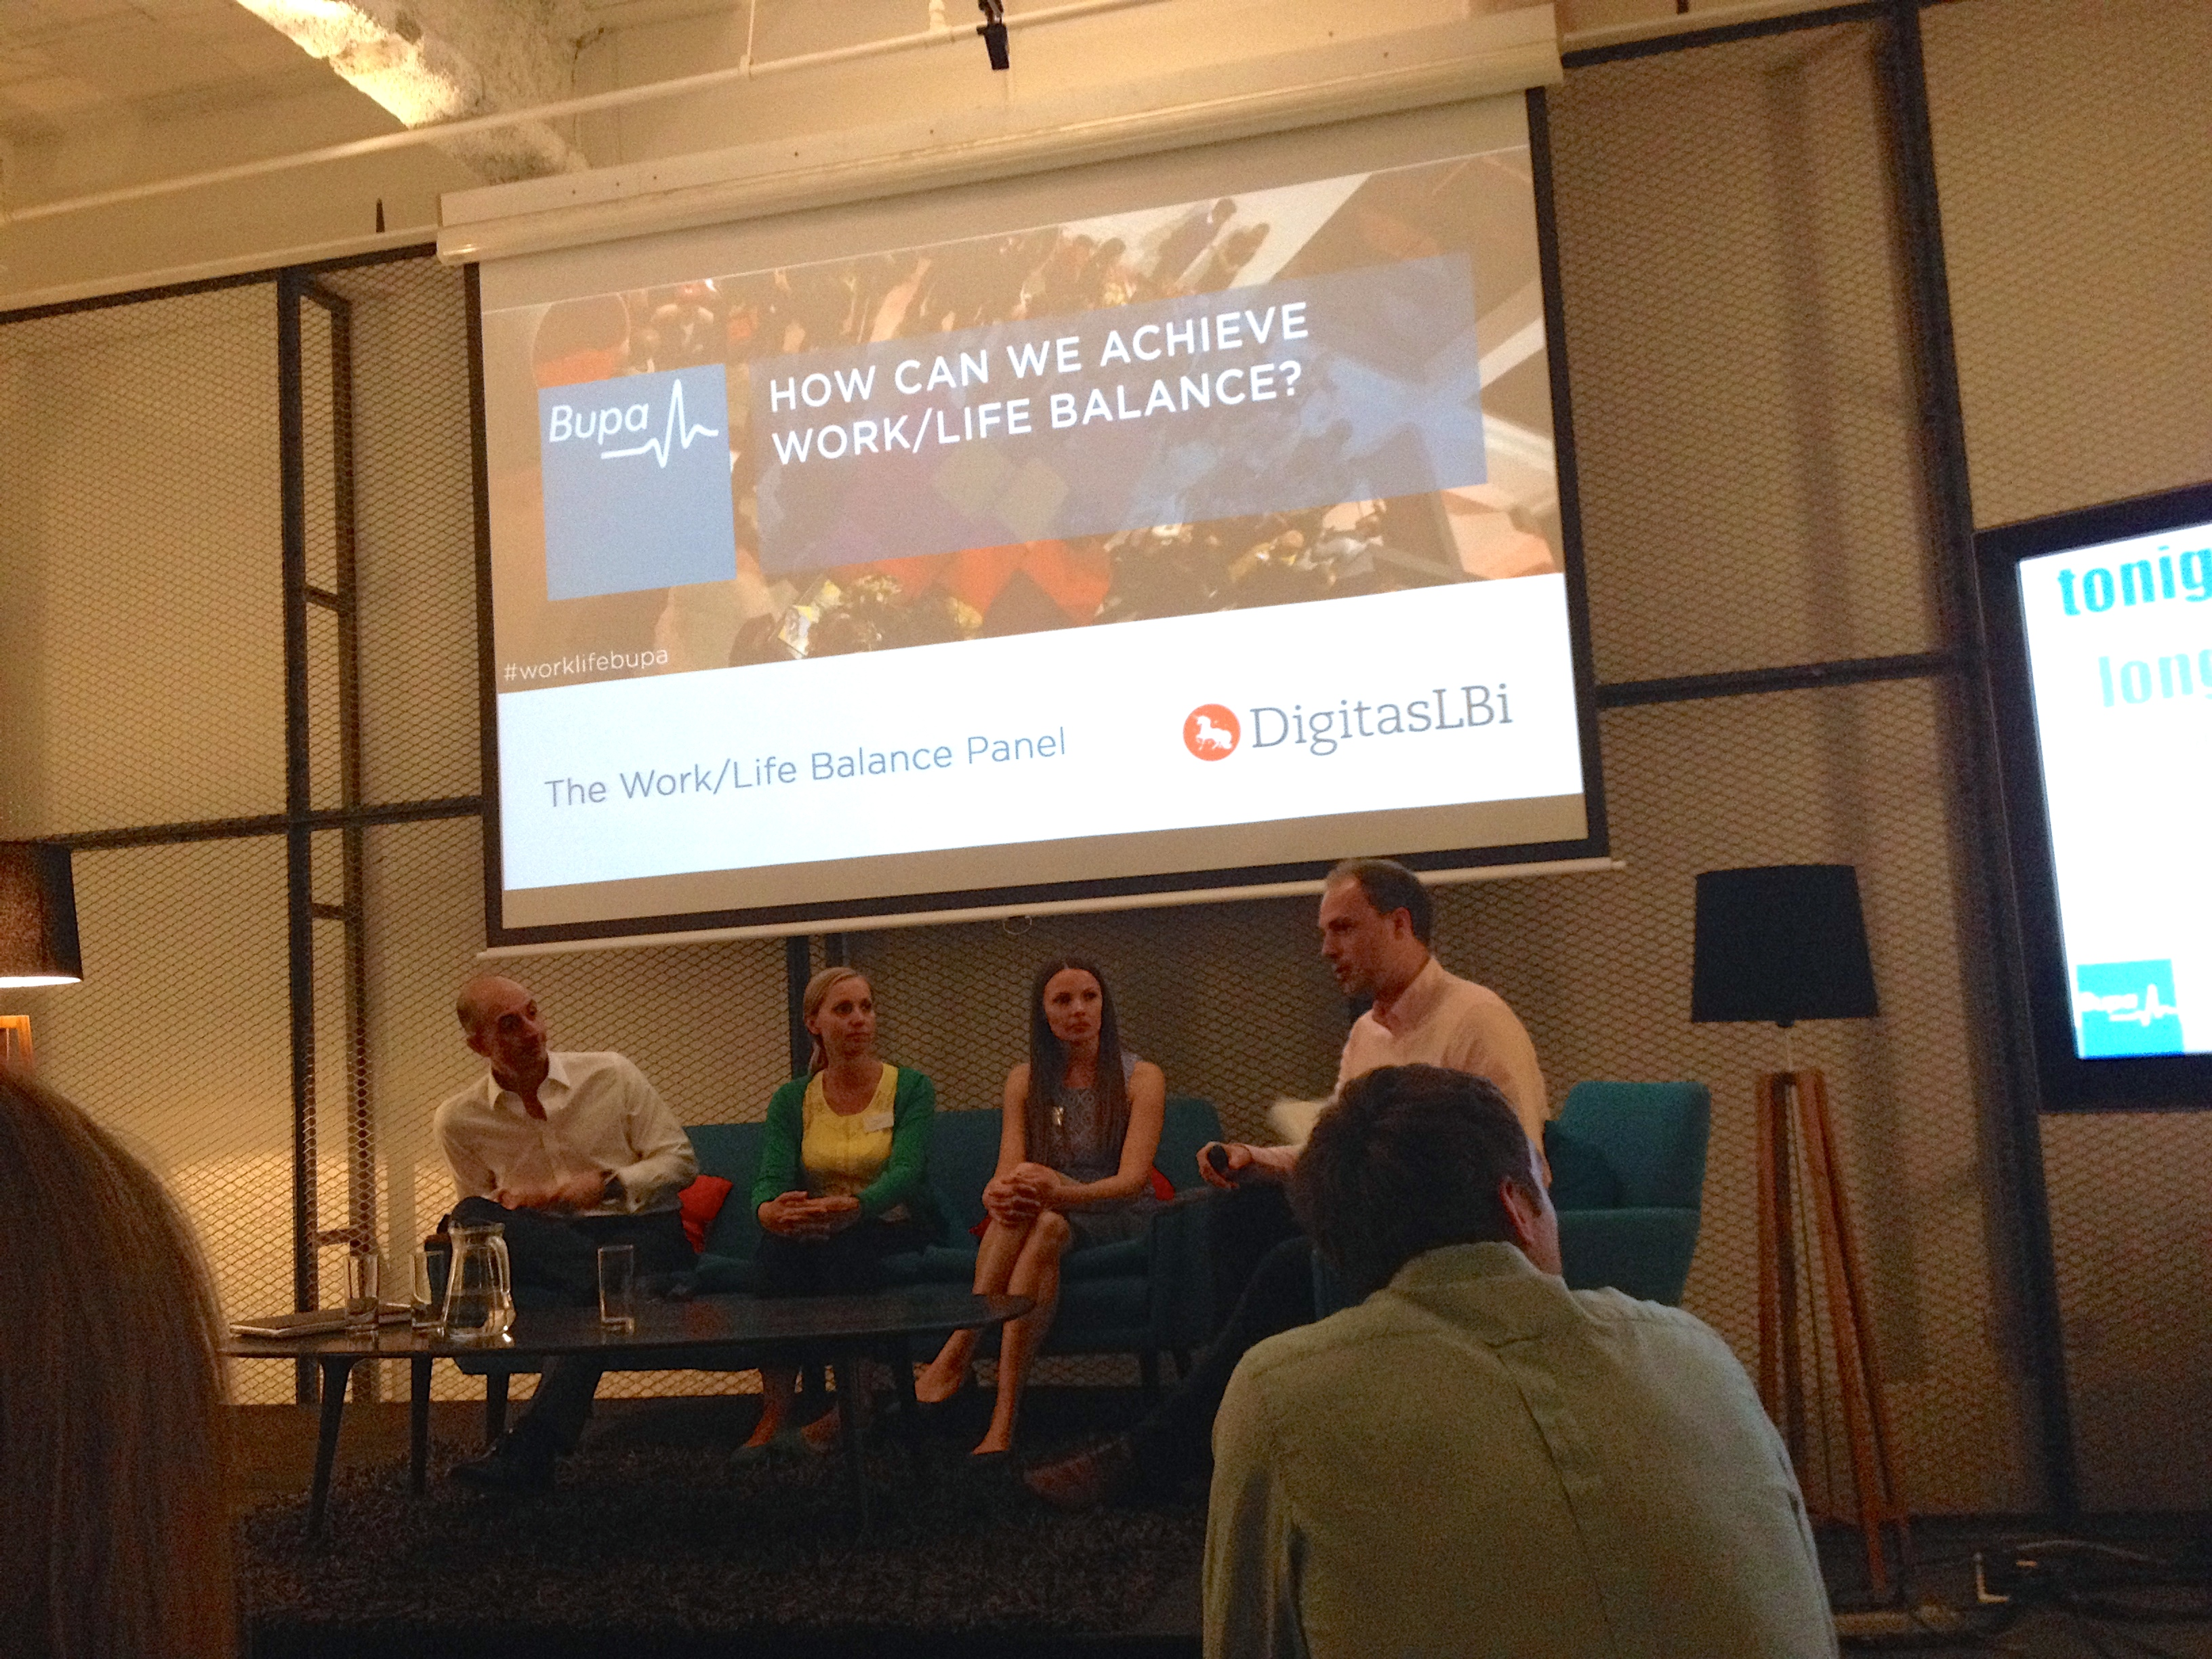 5 Steps to Well Being: An event with #worklifebupa